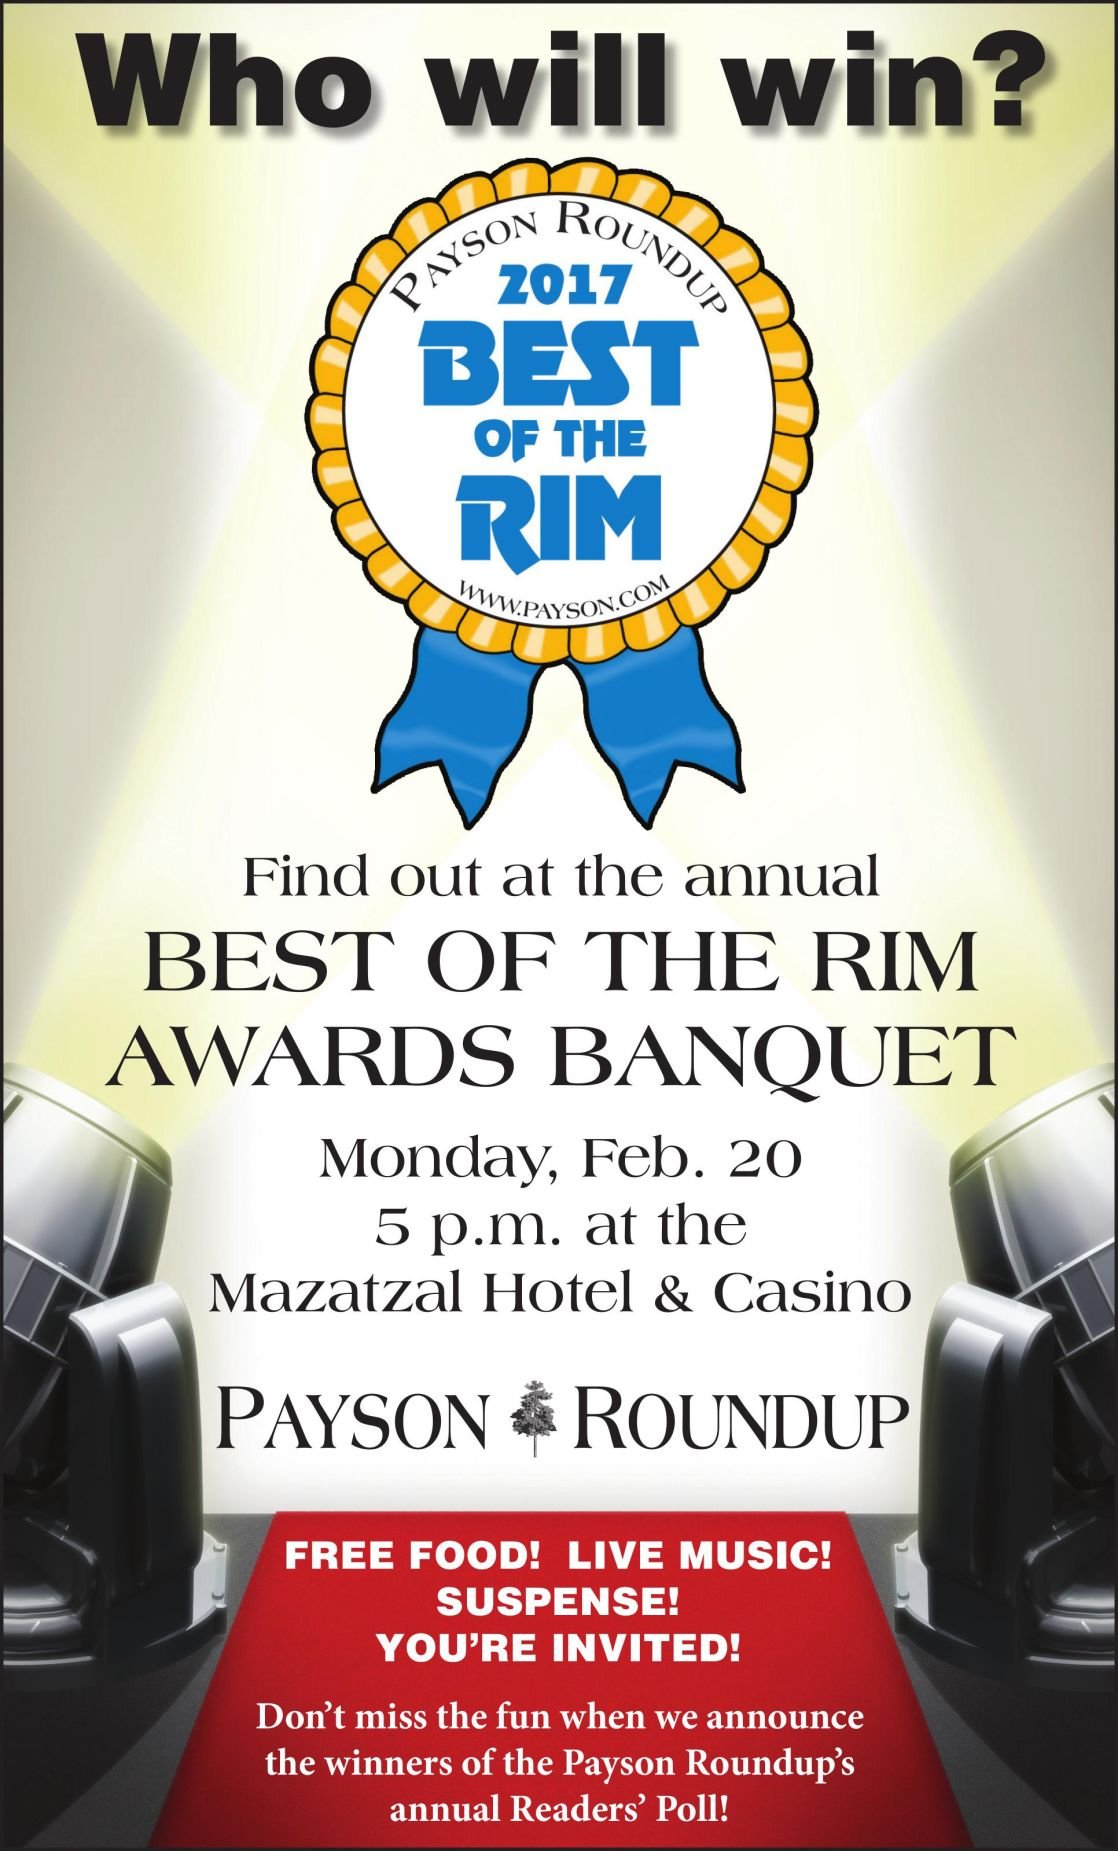 Best of the Rim 2017 - Who will win?